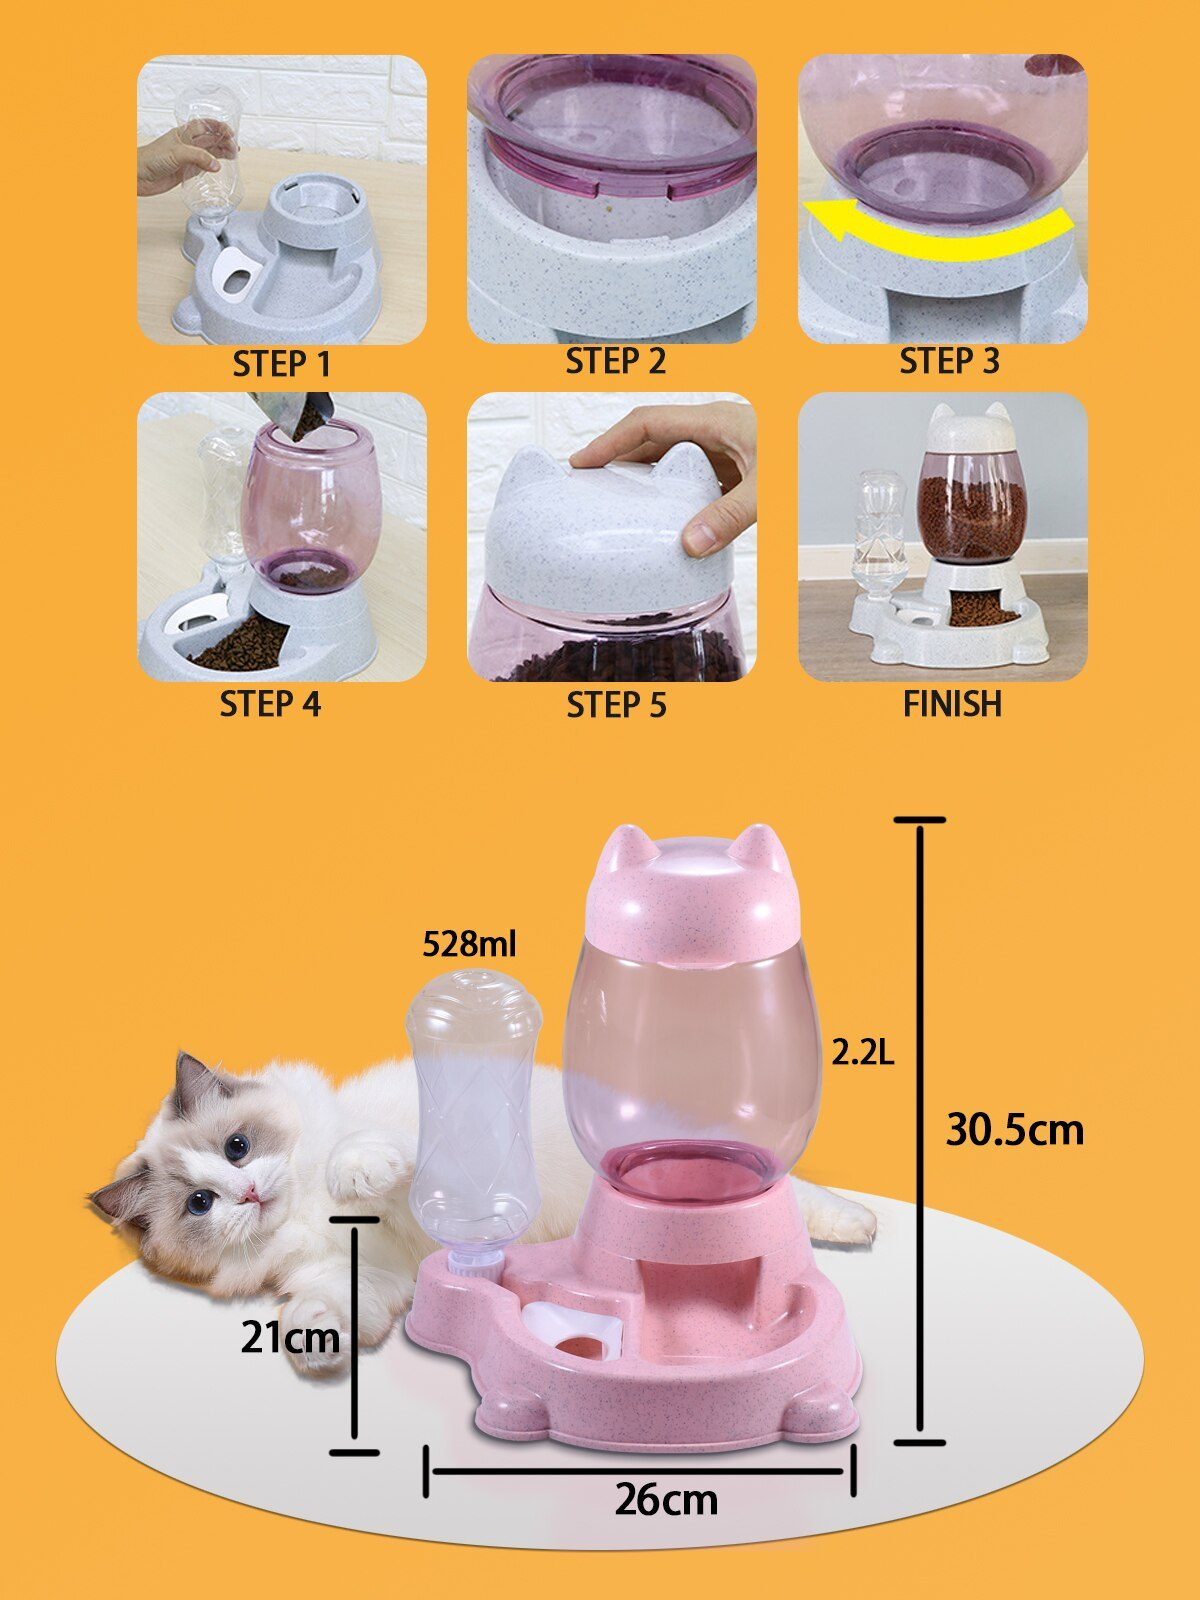 Pet Dog Cat Bowl Fountain Automatic Water Food Feeder Dispenser Container For Cats Dogs Drinking Eating Products Supplies